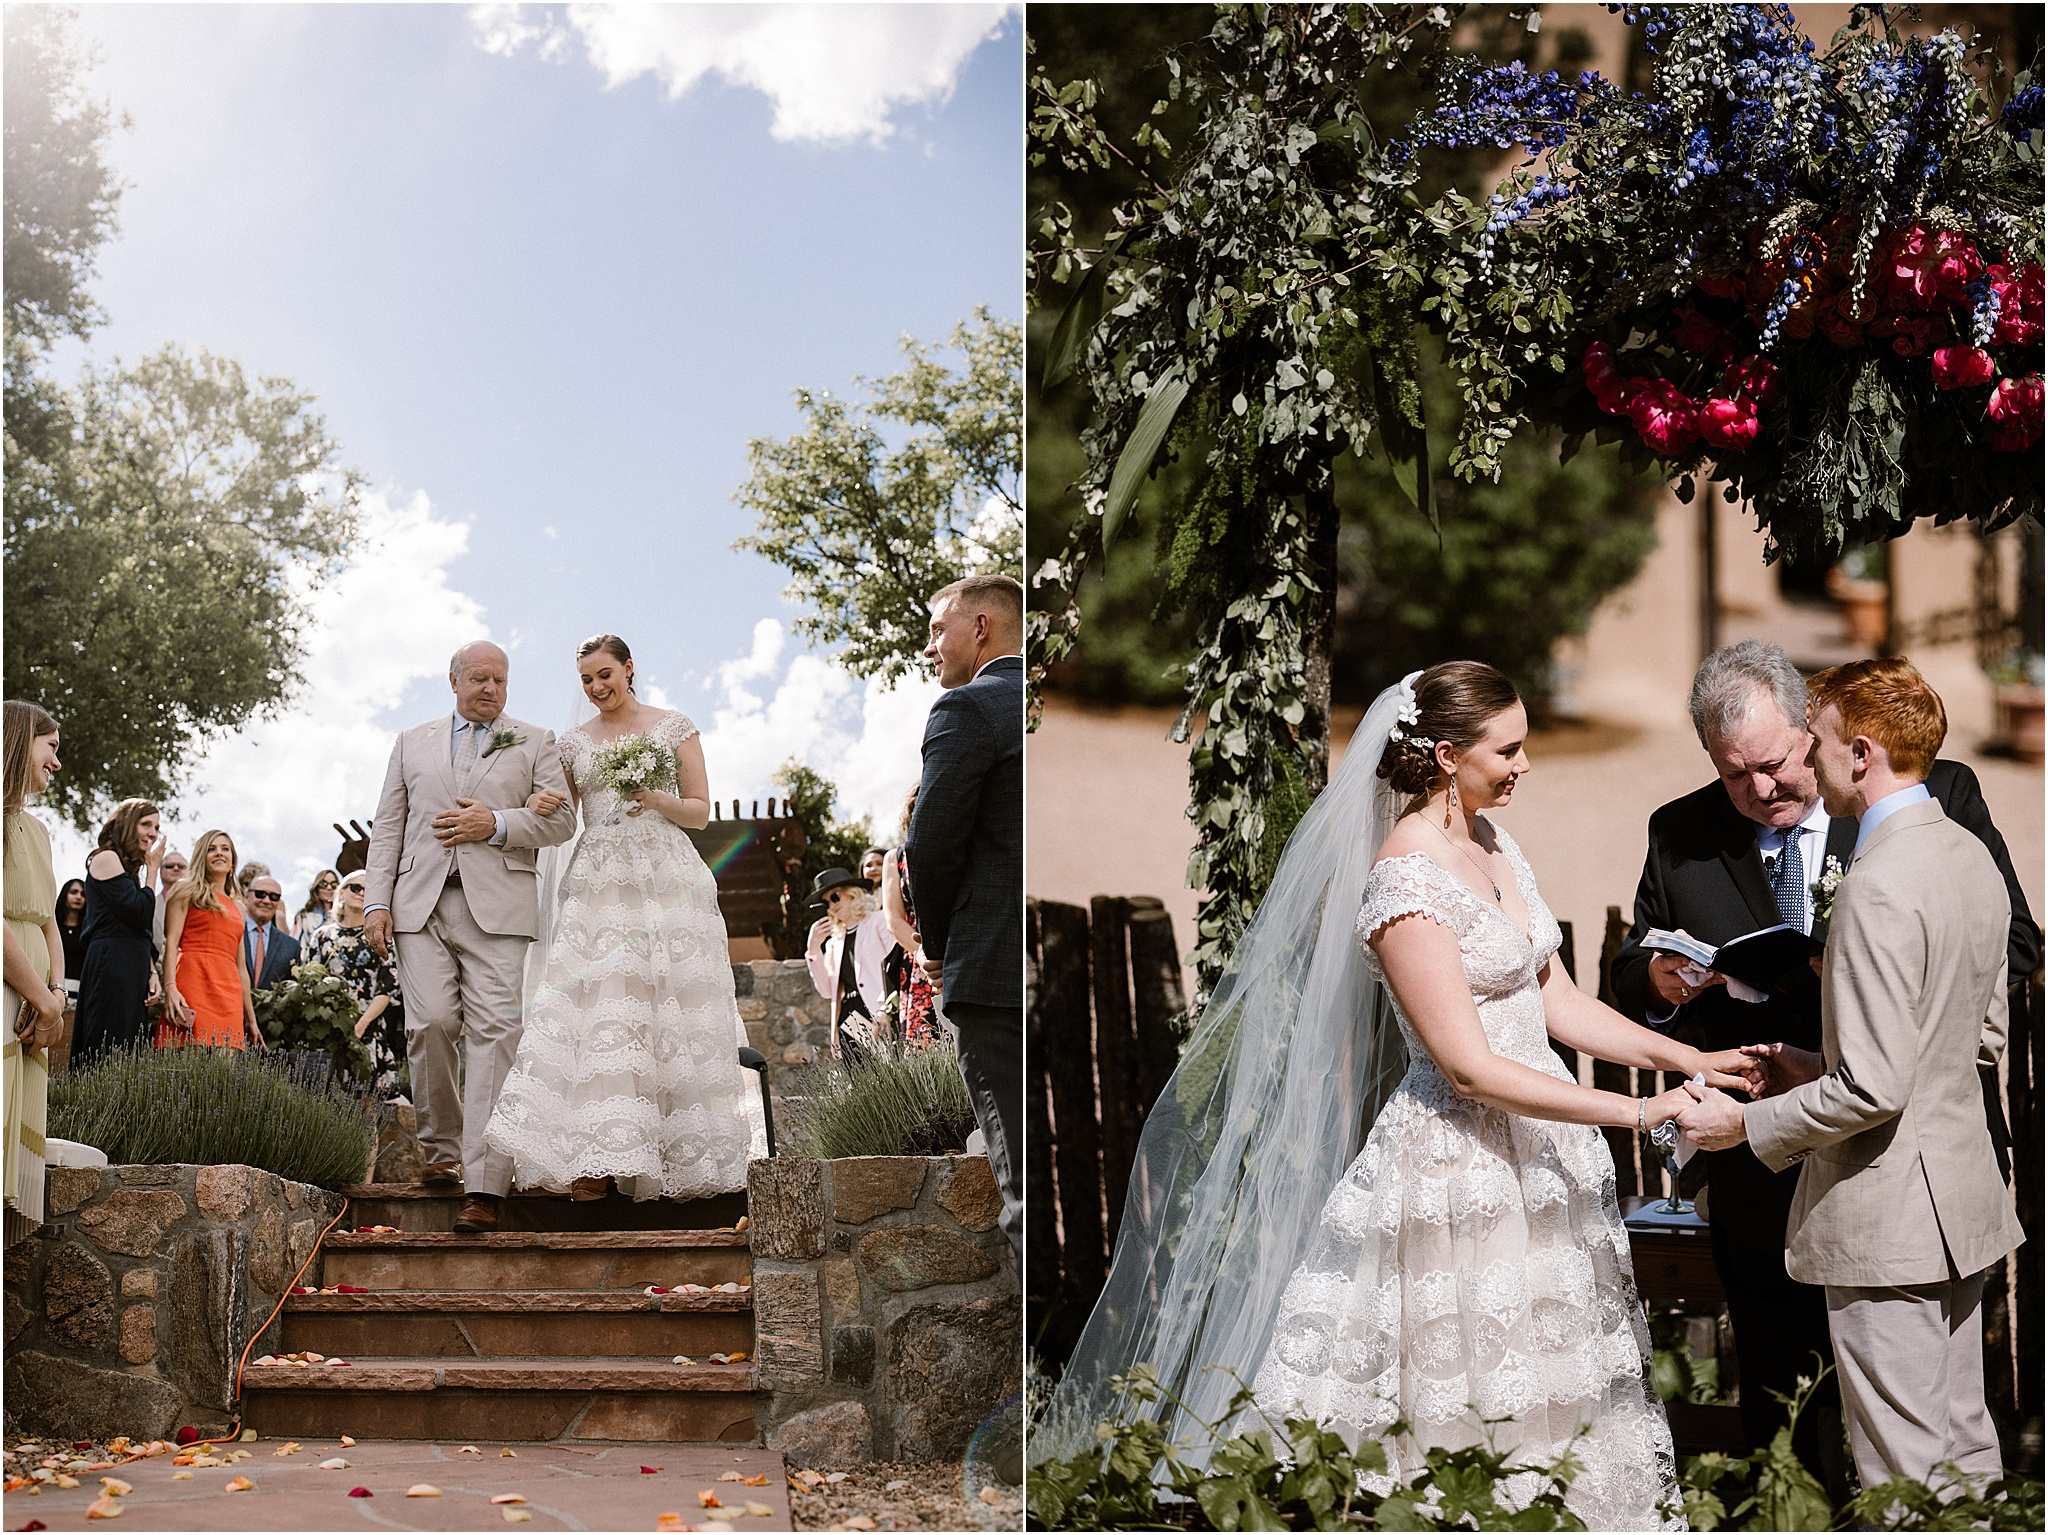 AMELIA_JASON_SANTA FE_ WEDDING_BLUE ROSE PHOTOGRAPHY59